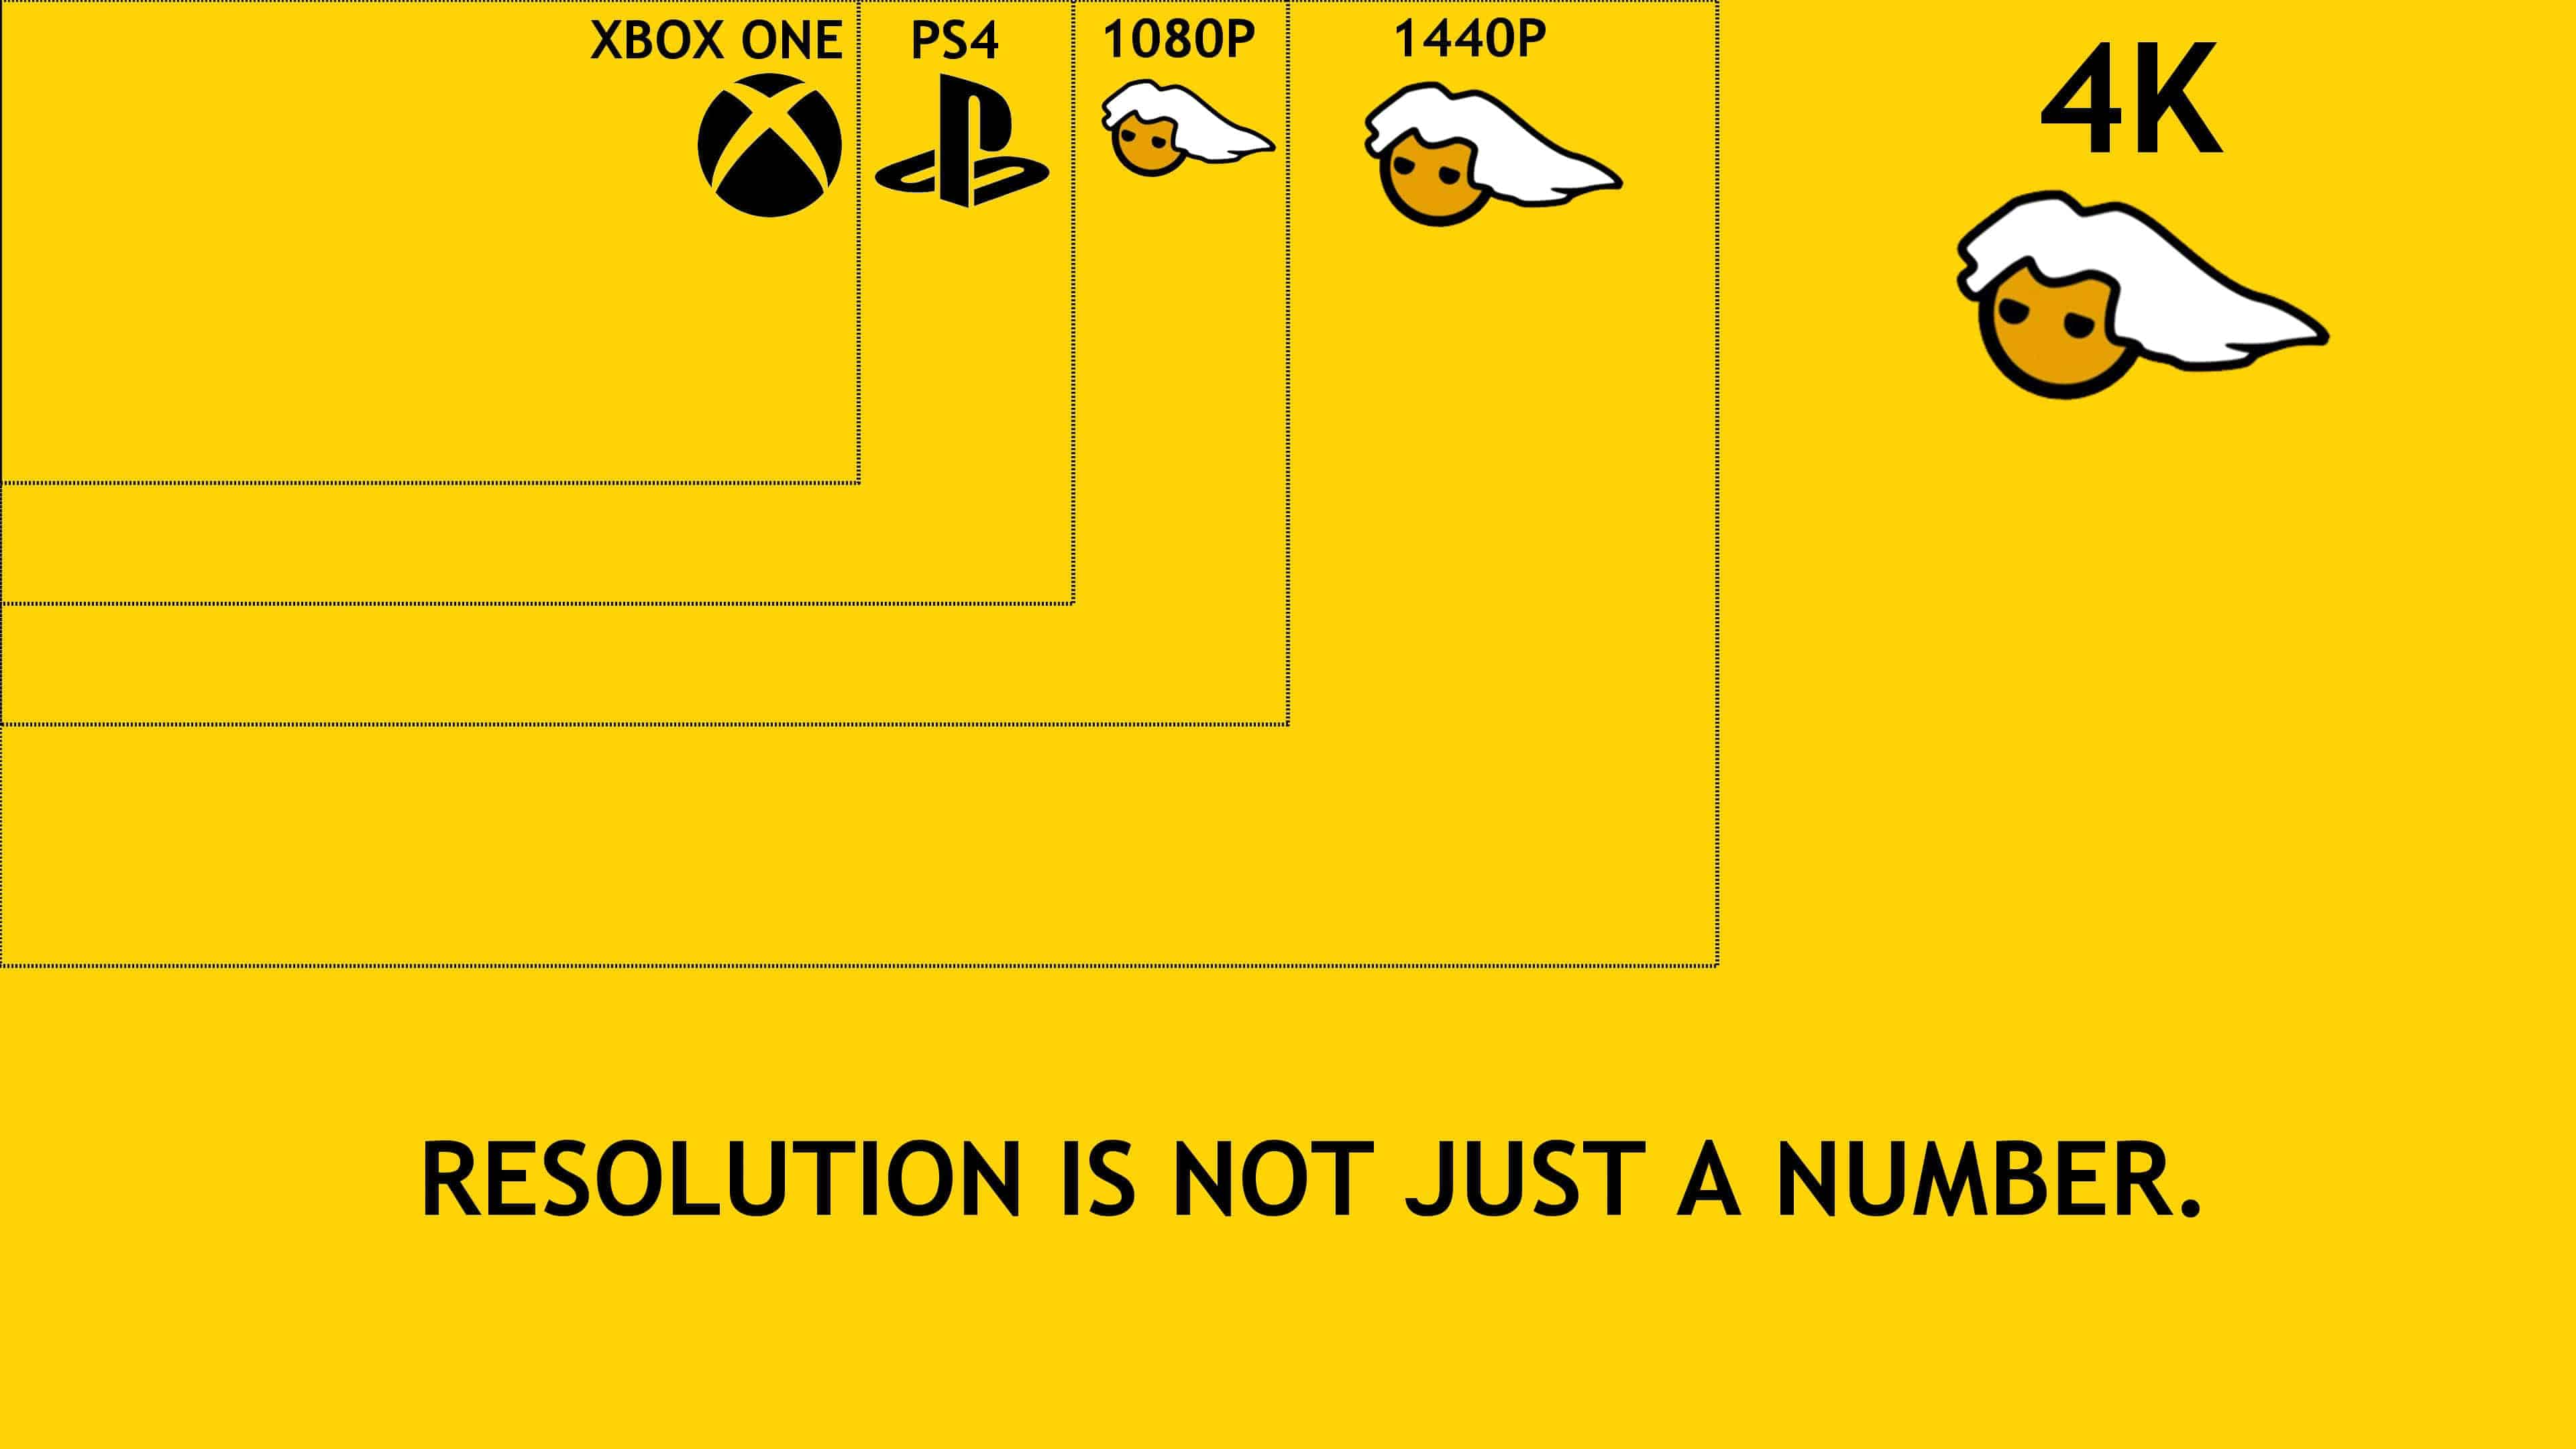 Resolution Isnt Just A Number Pc Master Race Uhd 4k Pc Master Race Not 3109405 Hd Wallpaper Backgrounds Download